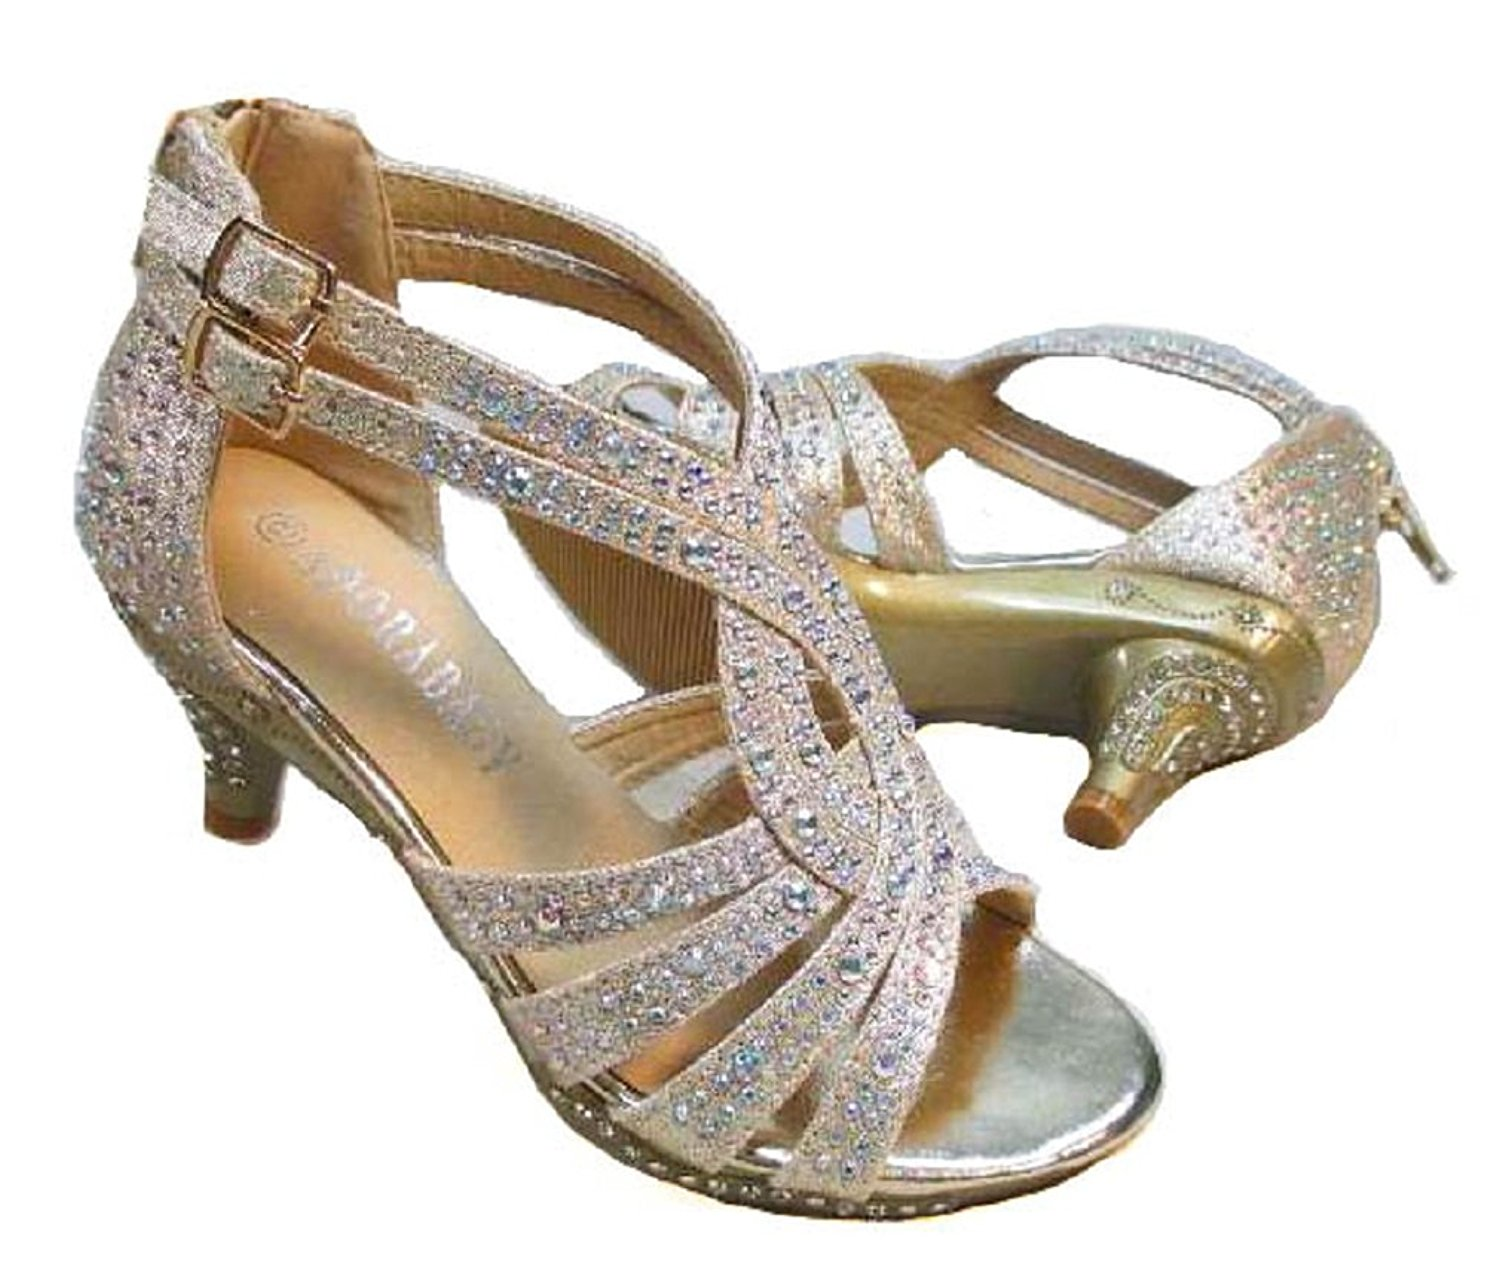 90741ce2d Get Quotations · Adorababy Girls Dress Shoes Rhinestone Pageant Heels  Champagne 4